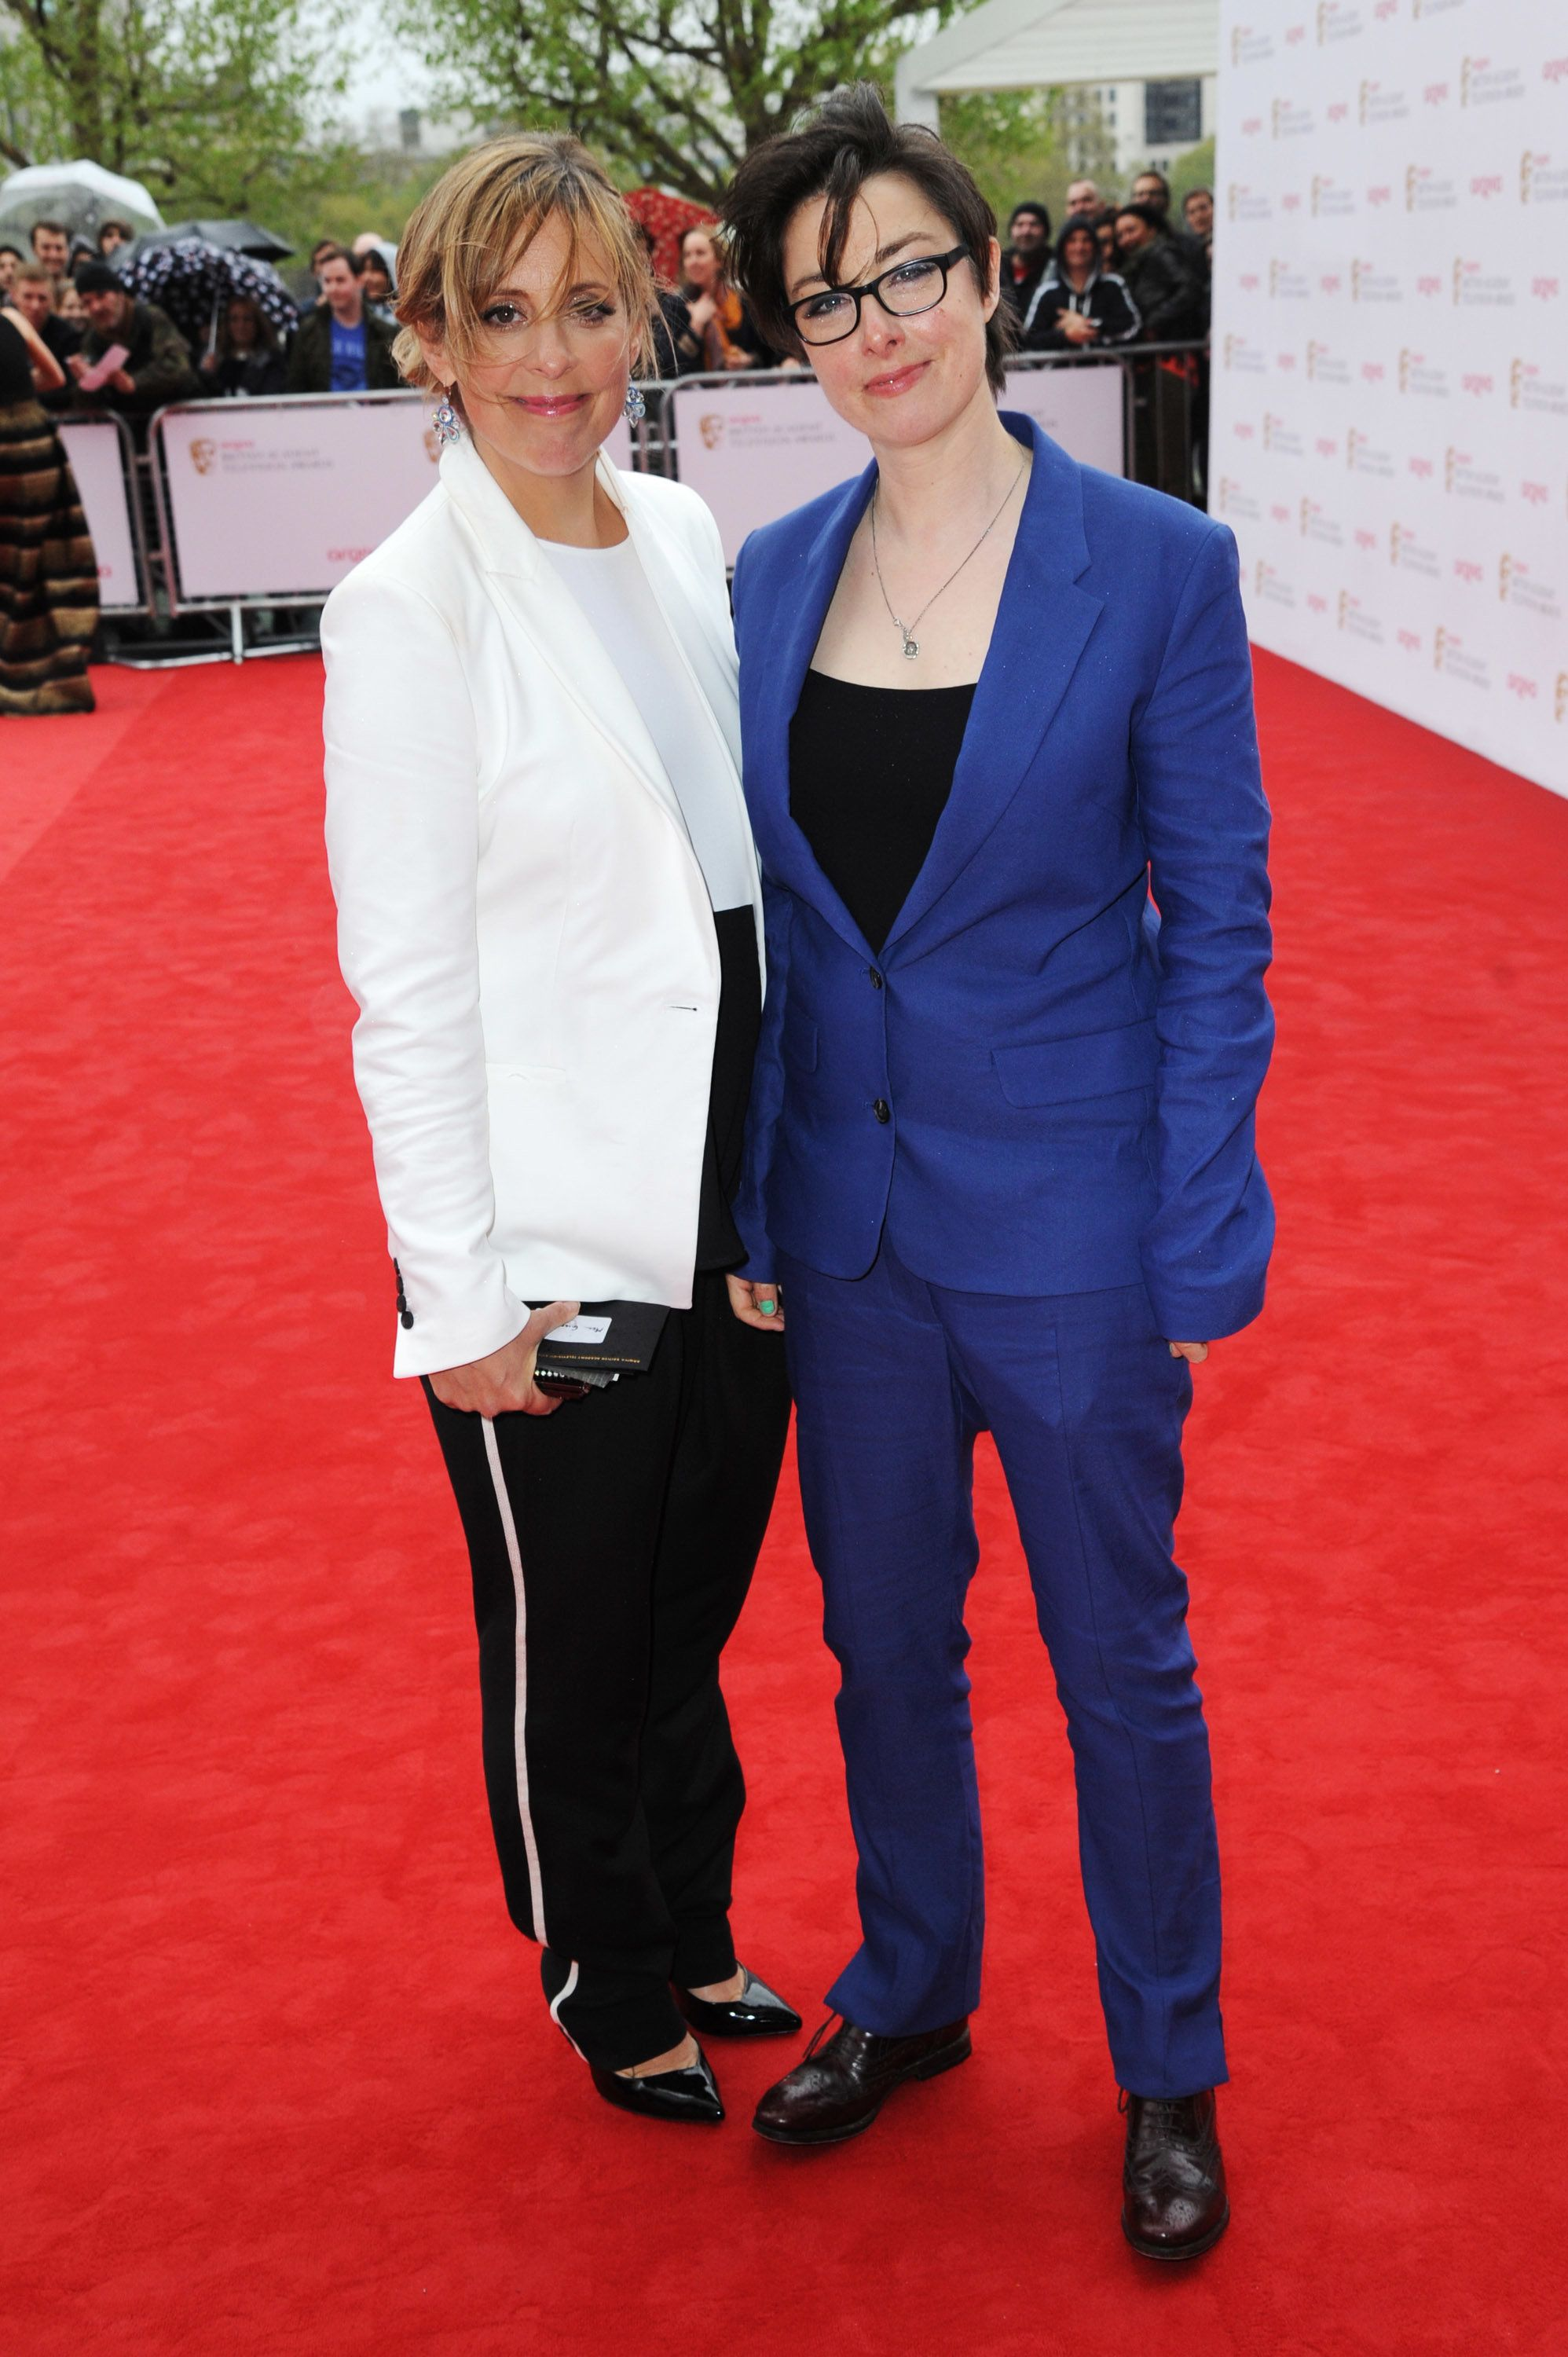 Mel And Sue Land Biggest BBC Presenting Job Since Quitting 'Great British Bake